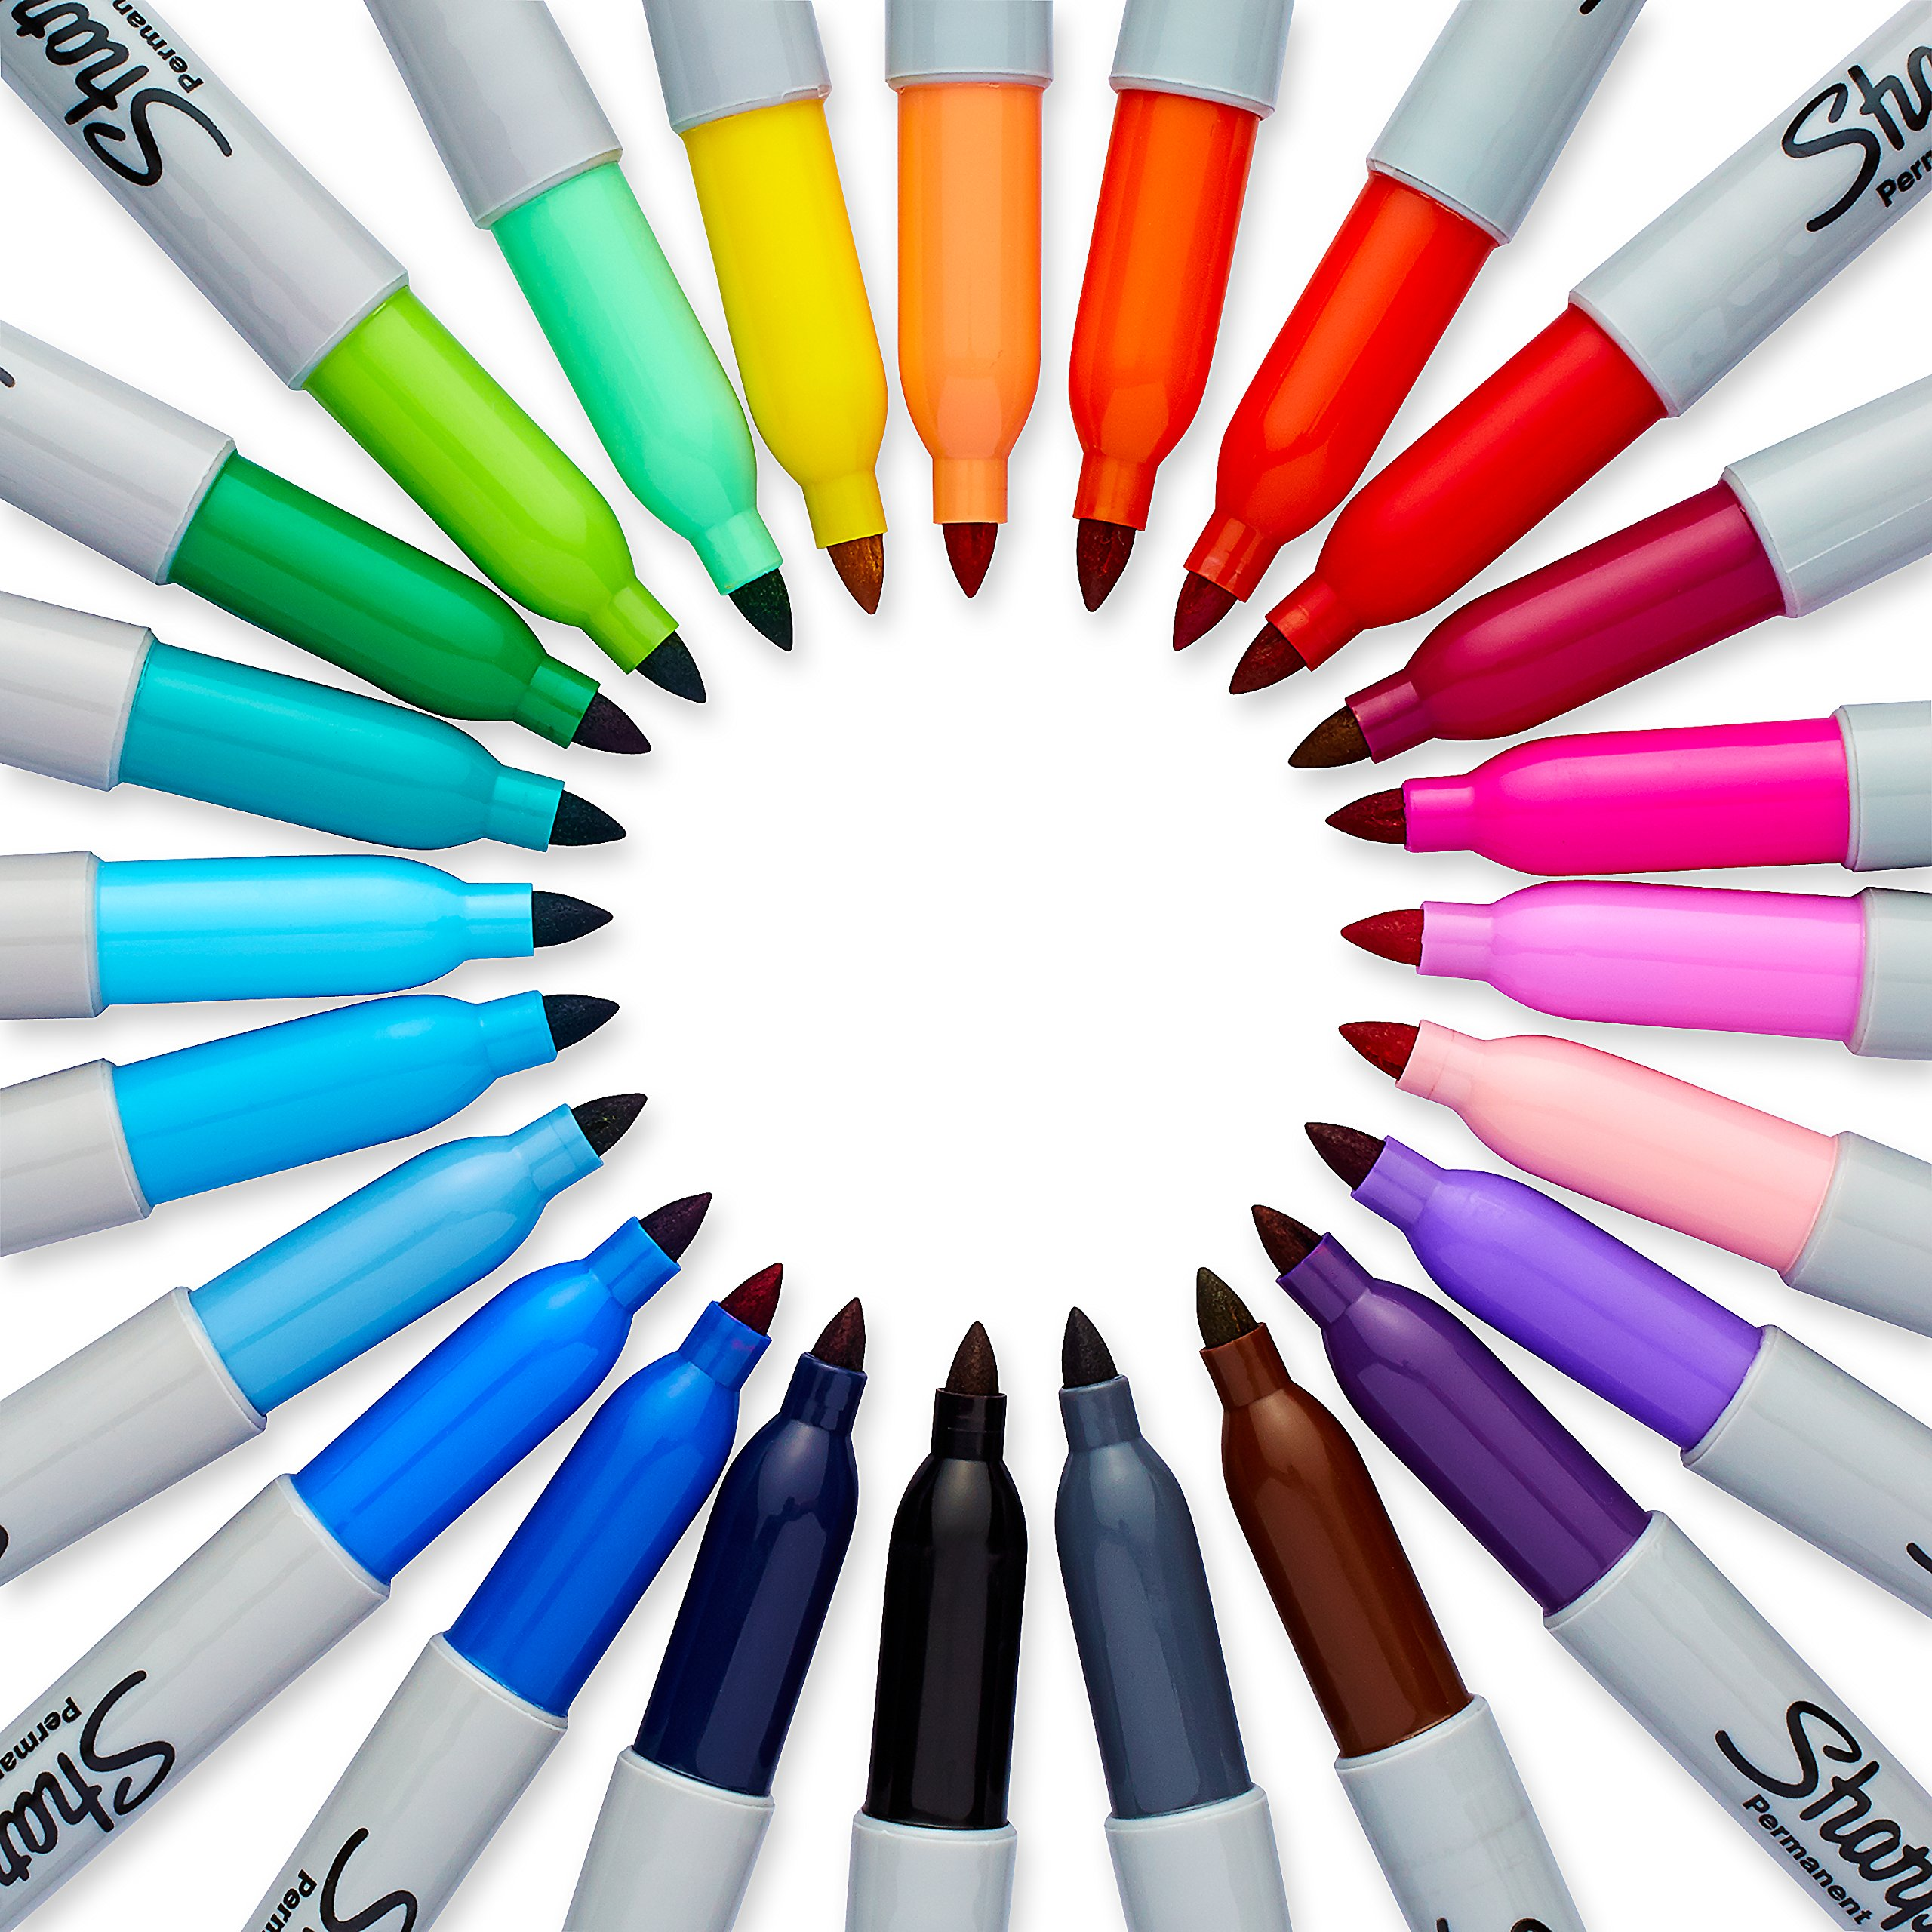 Sharpie Electro Pop Permanent Markers, Fine Point, Assorted Colors, 24 Count by Sharpie (Image #4)